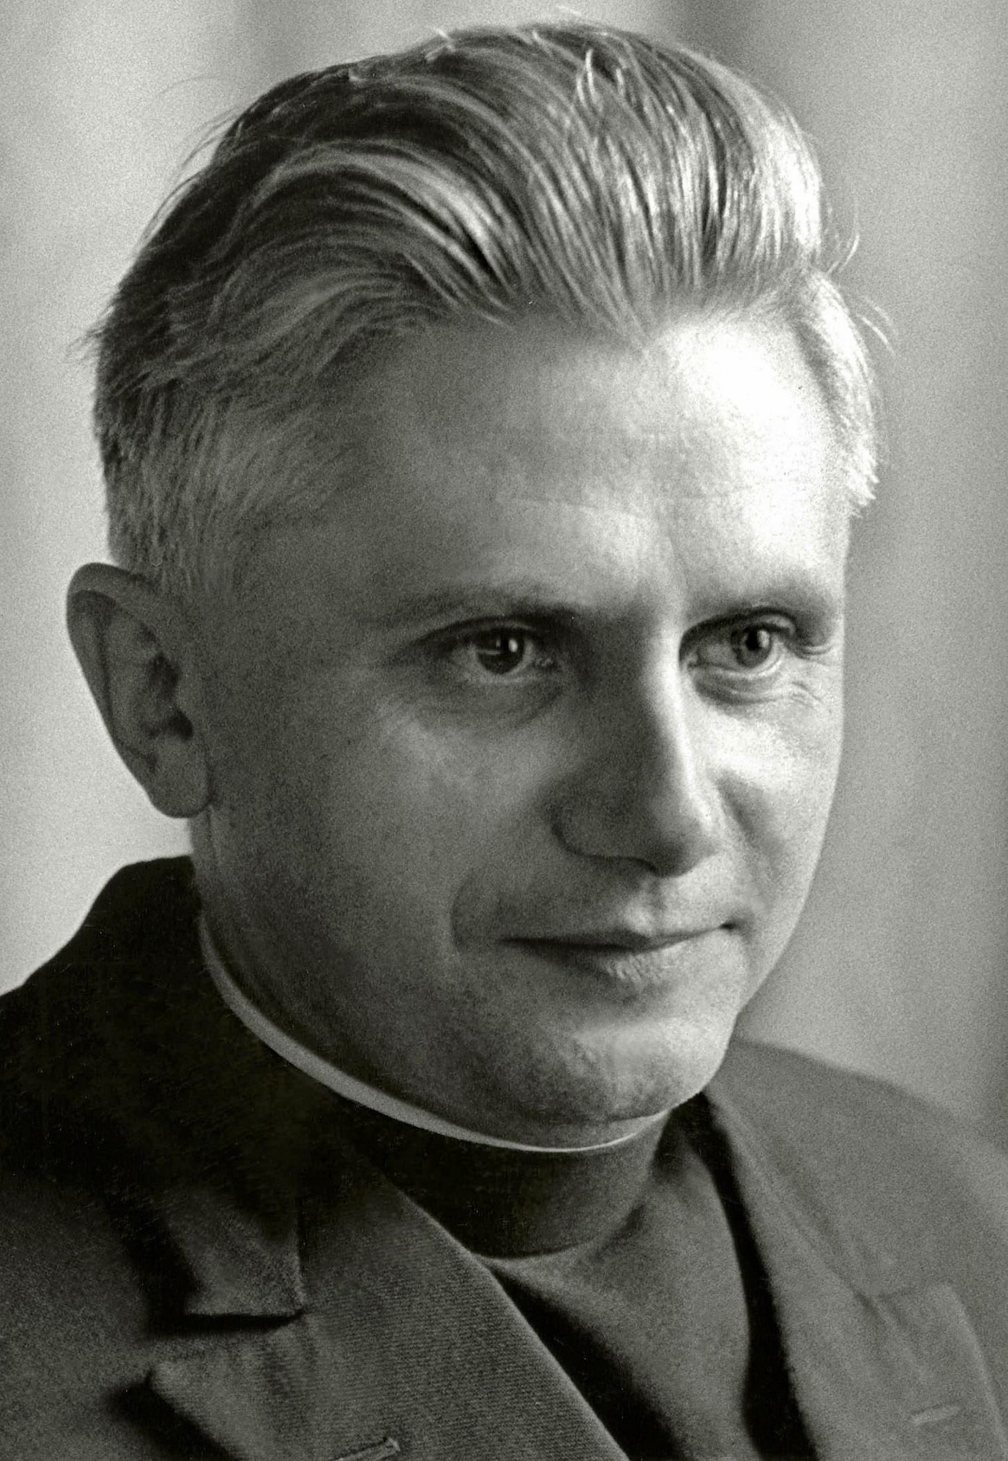 Joseph Ratzinger,  professor at the University of Regensburg, September 14, 1965